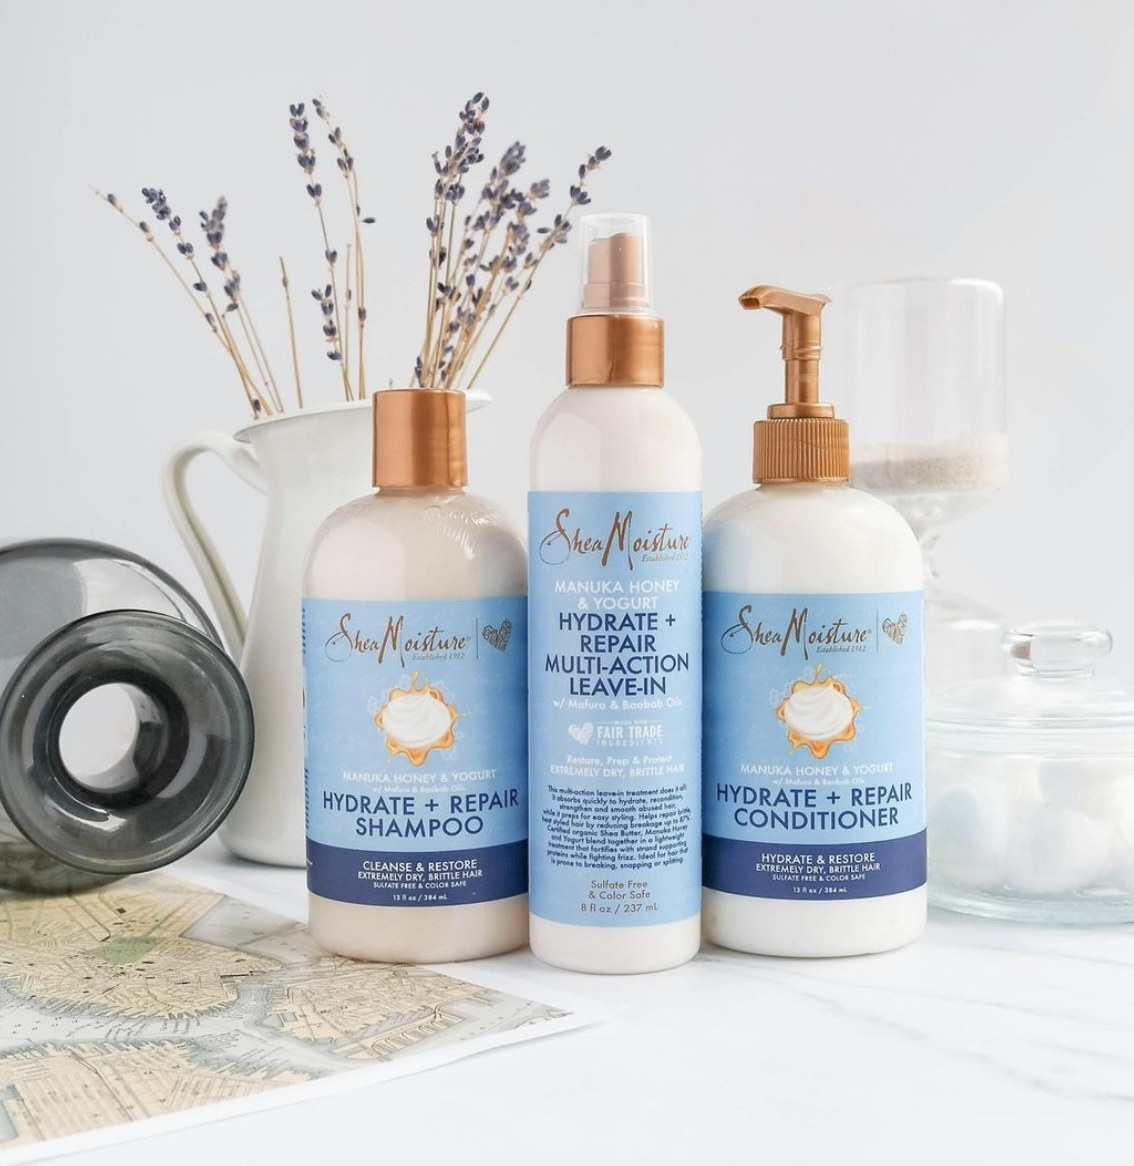 A set of shampoo, conditioner, and leave-in conditioner